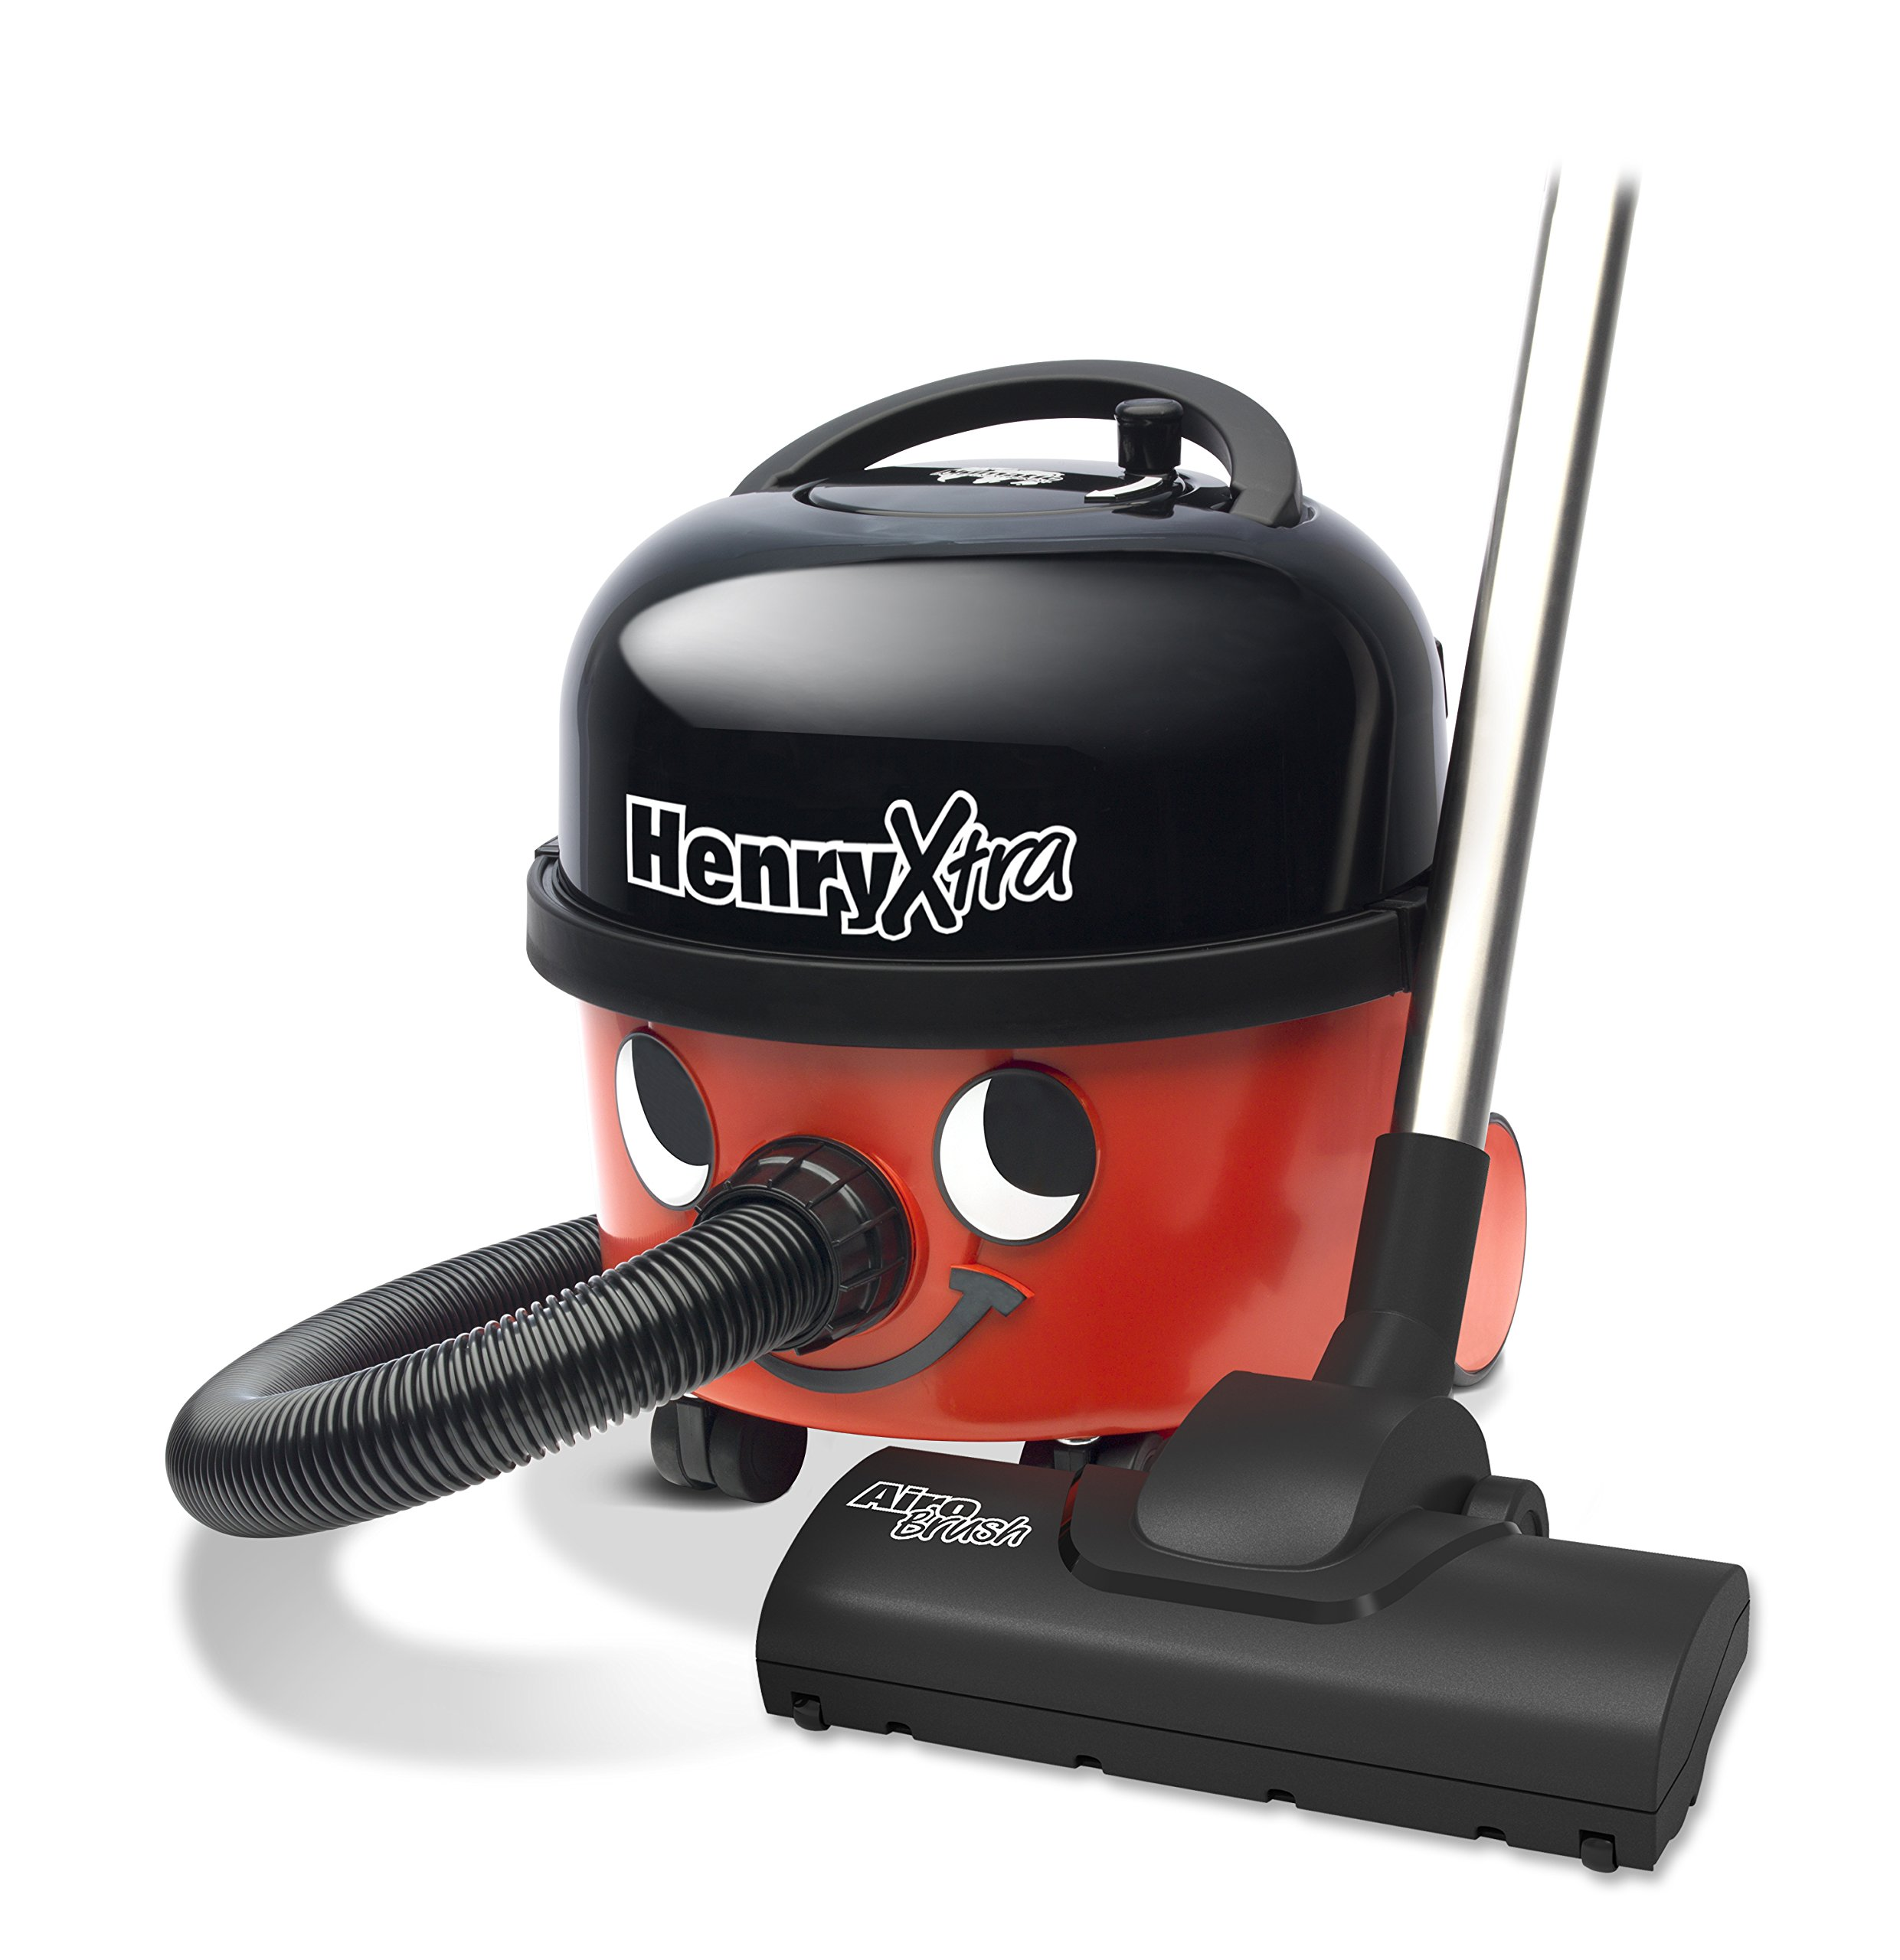 HVX200A Henry Xtra Bagged Cylinder Vaccum: Amazon.es: Electrónica